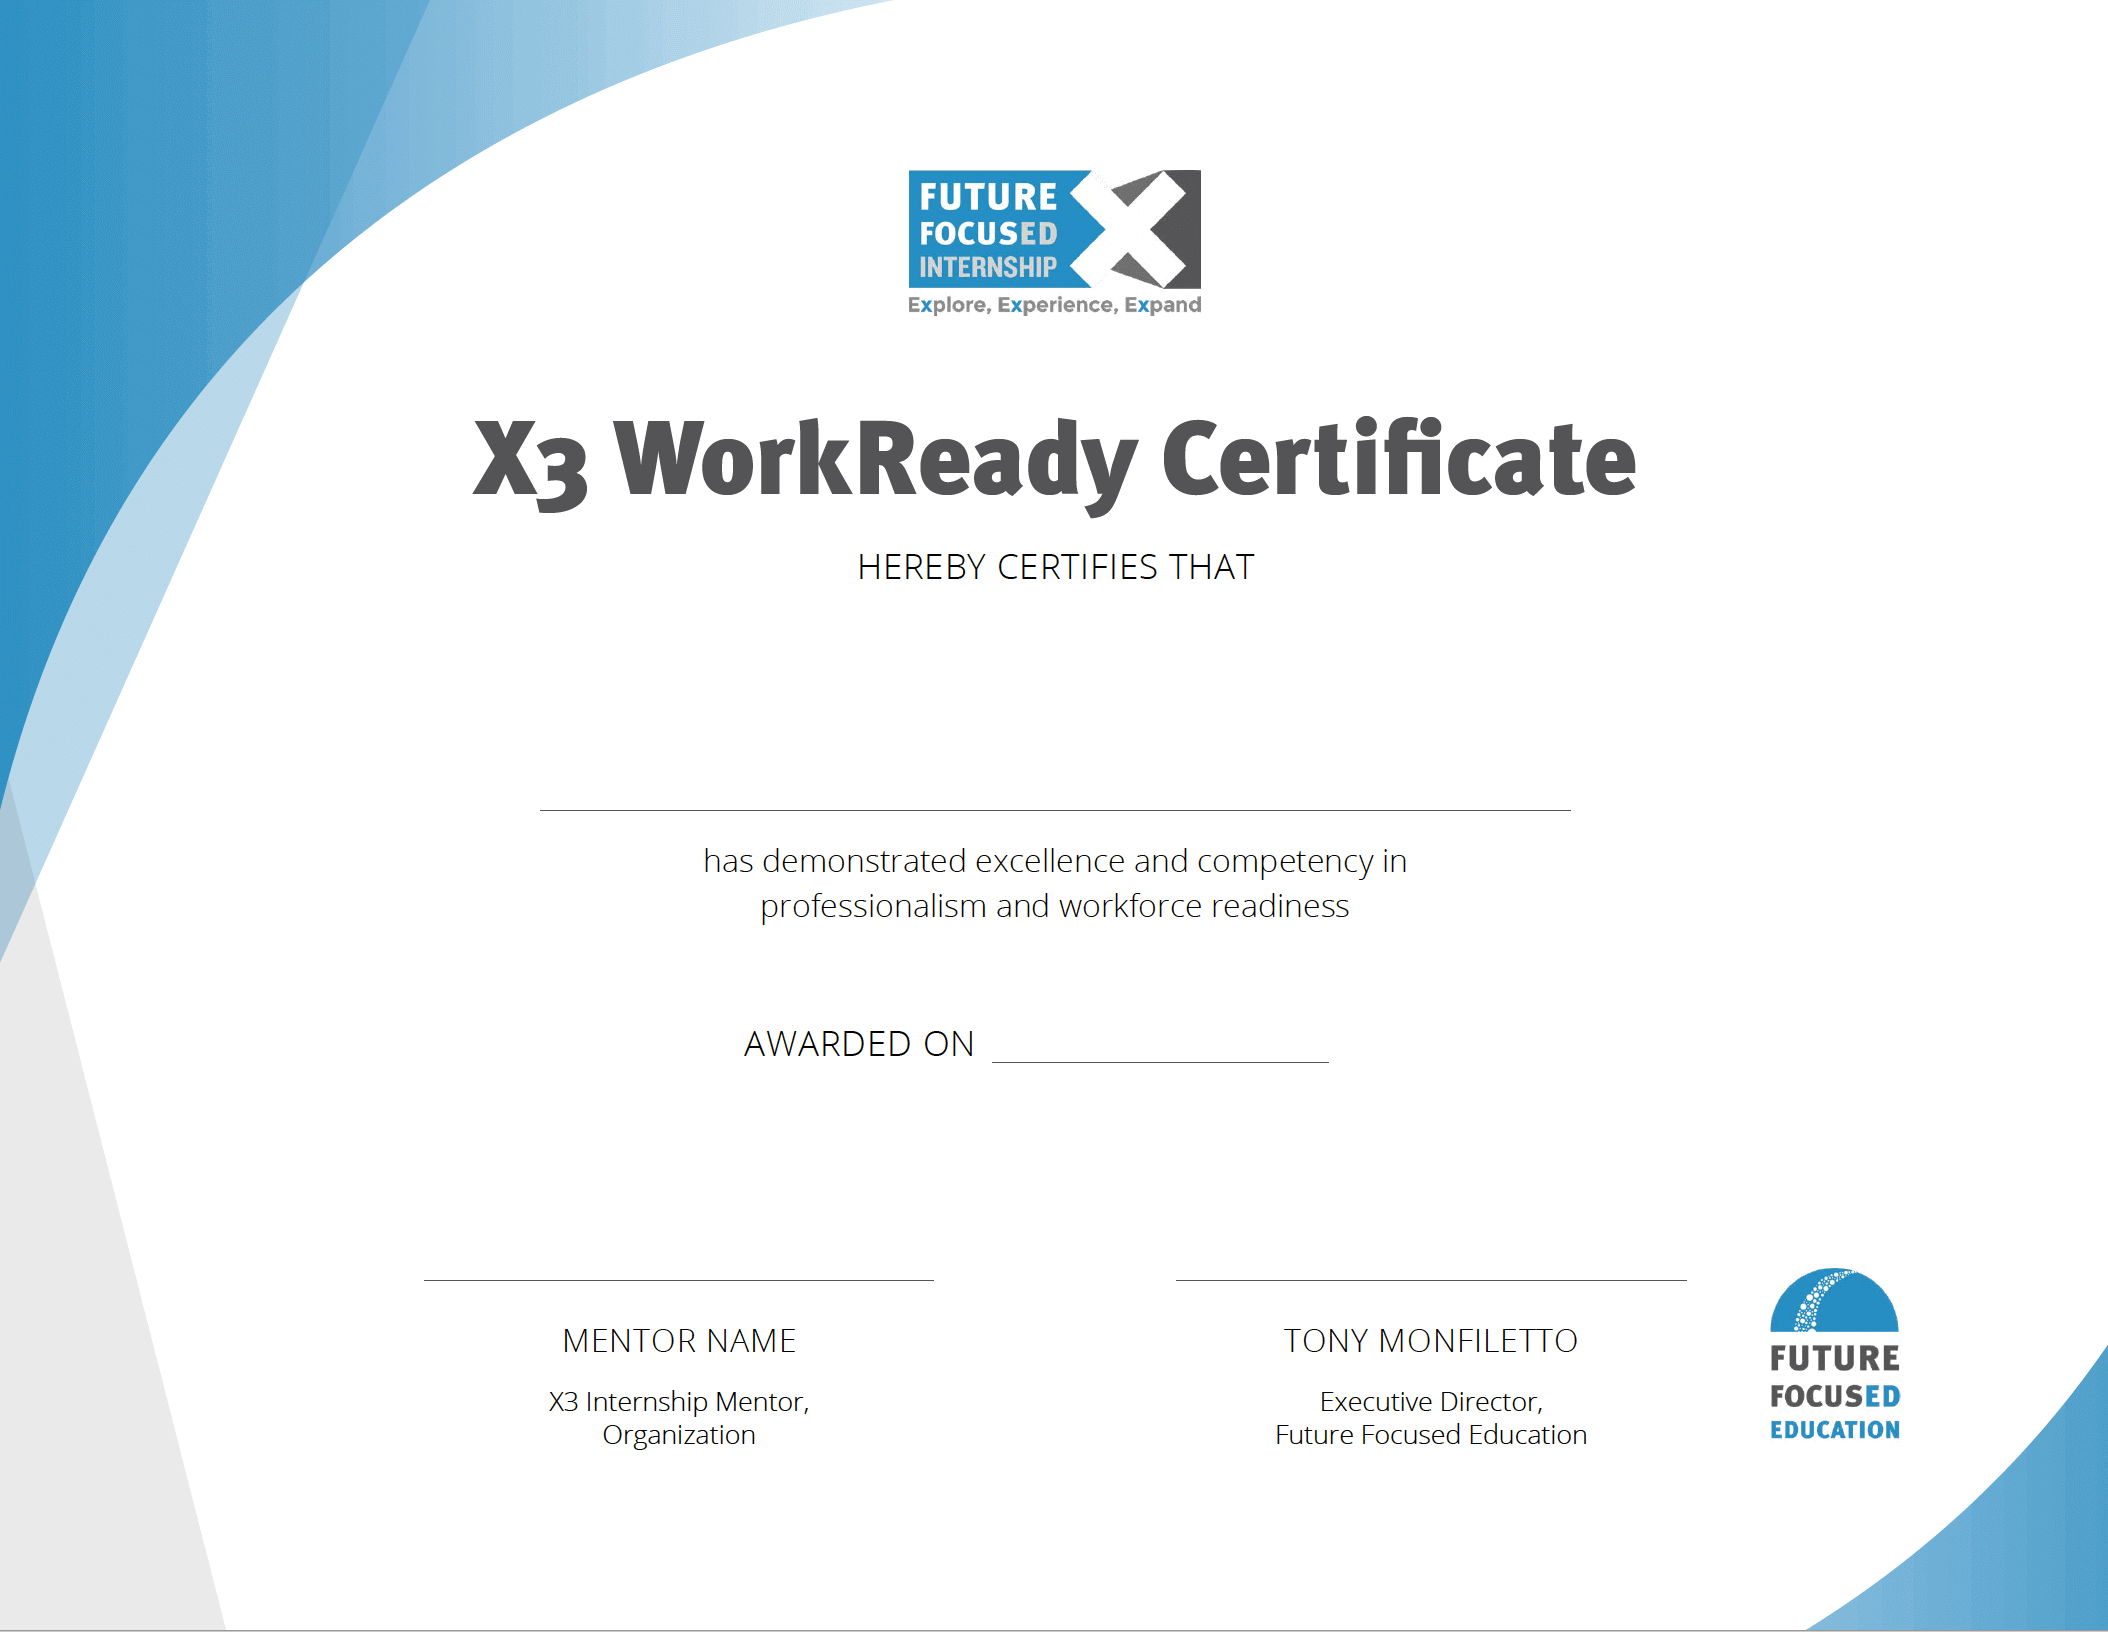 WorkReady Certificate Image